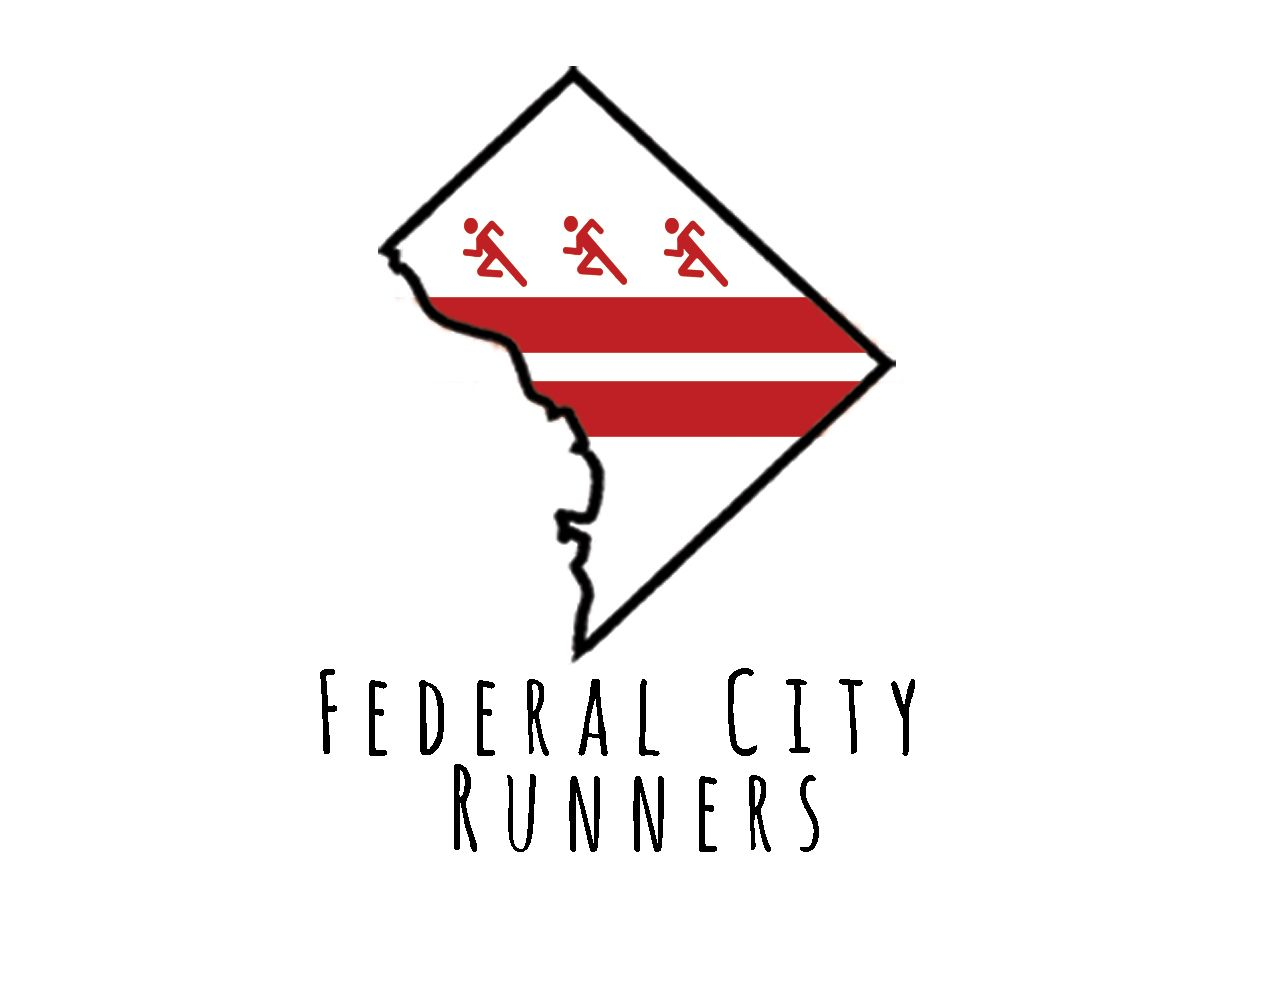 Federal City Runners